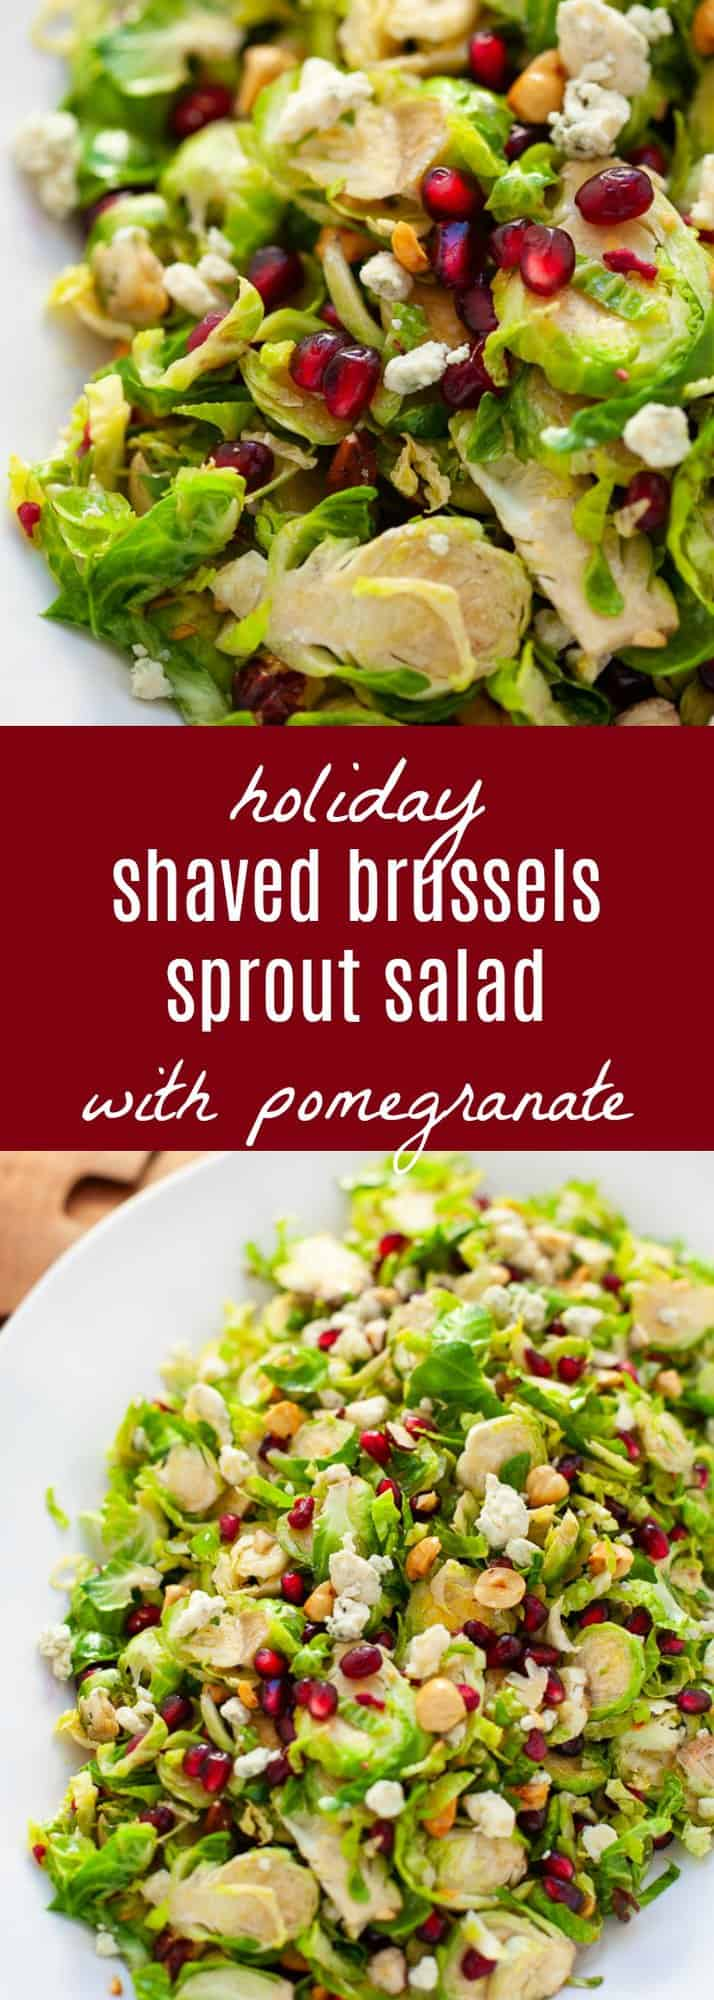 Looking for a festive salad to serve up this holiday season? You and your guests will love my easy and delicious shaved Brussels sprout salad with pomegranate with a citrus vinaigrette. #holiday #salad